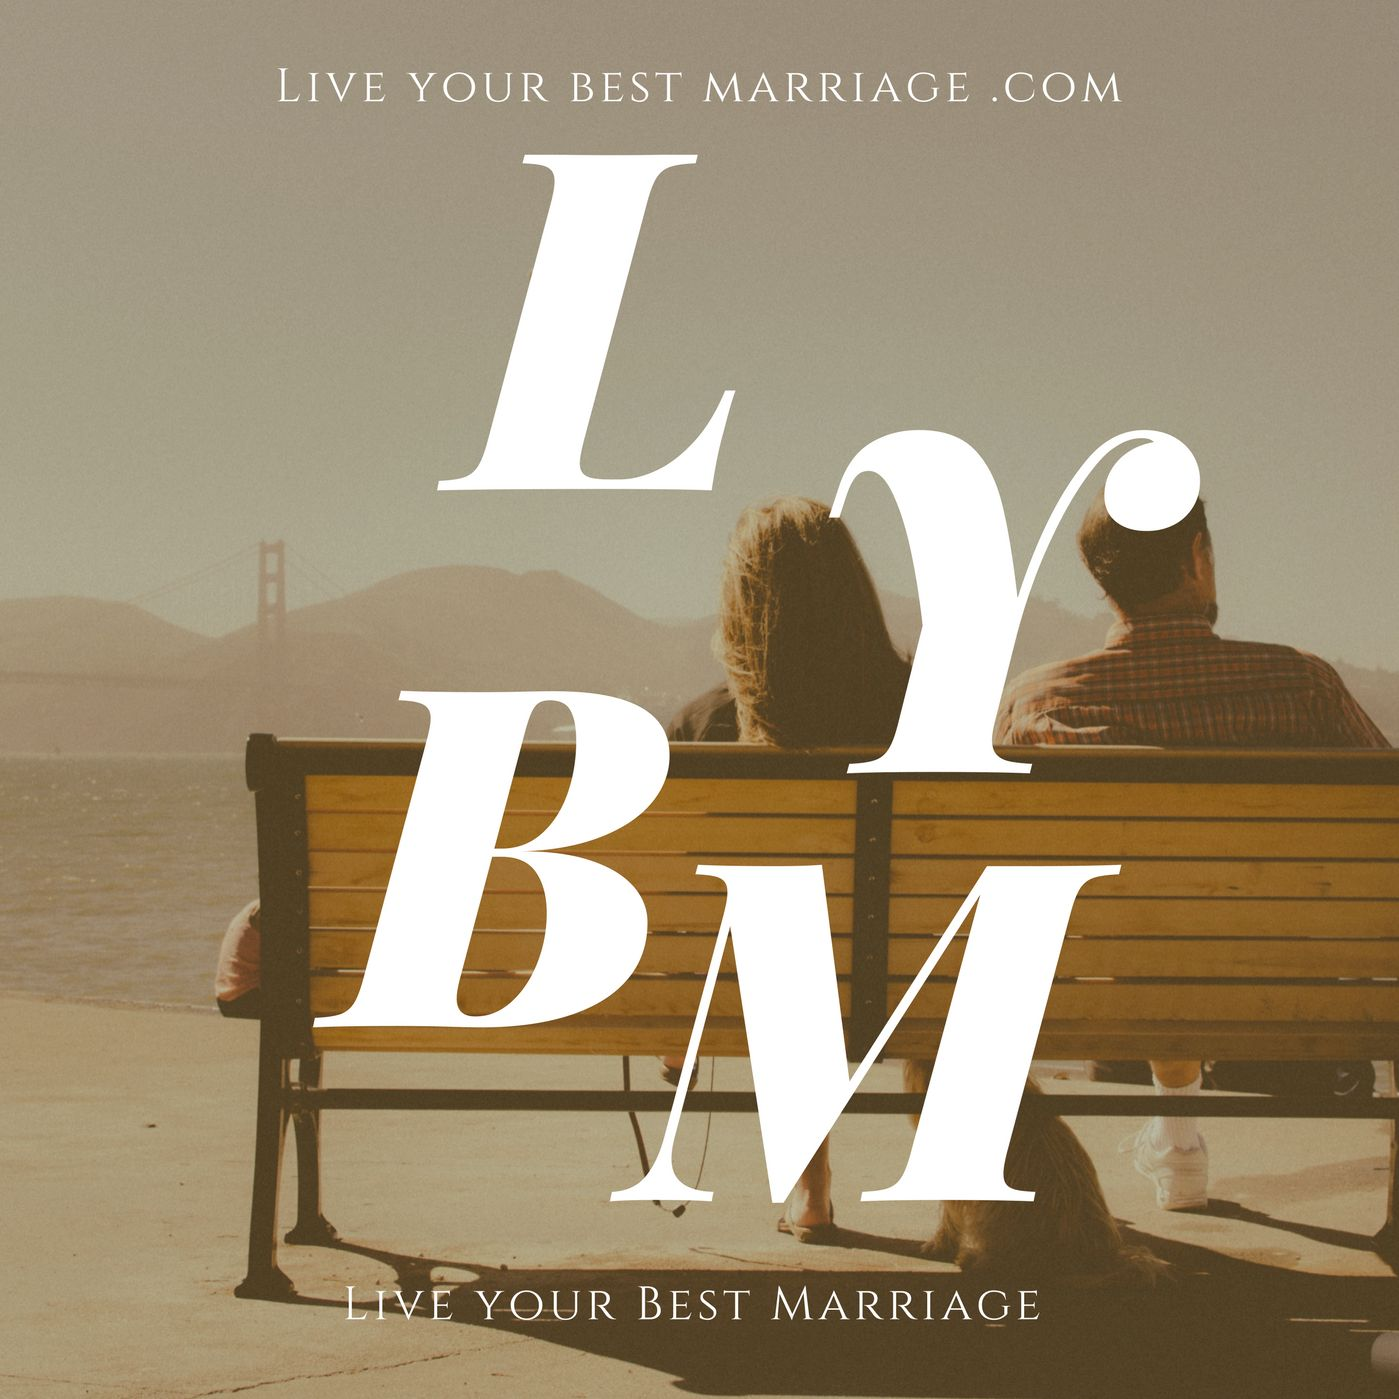 episode-23-how-to-share-decision-making-in-your-marriage_thumbnail.png